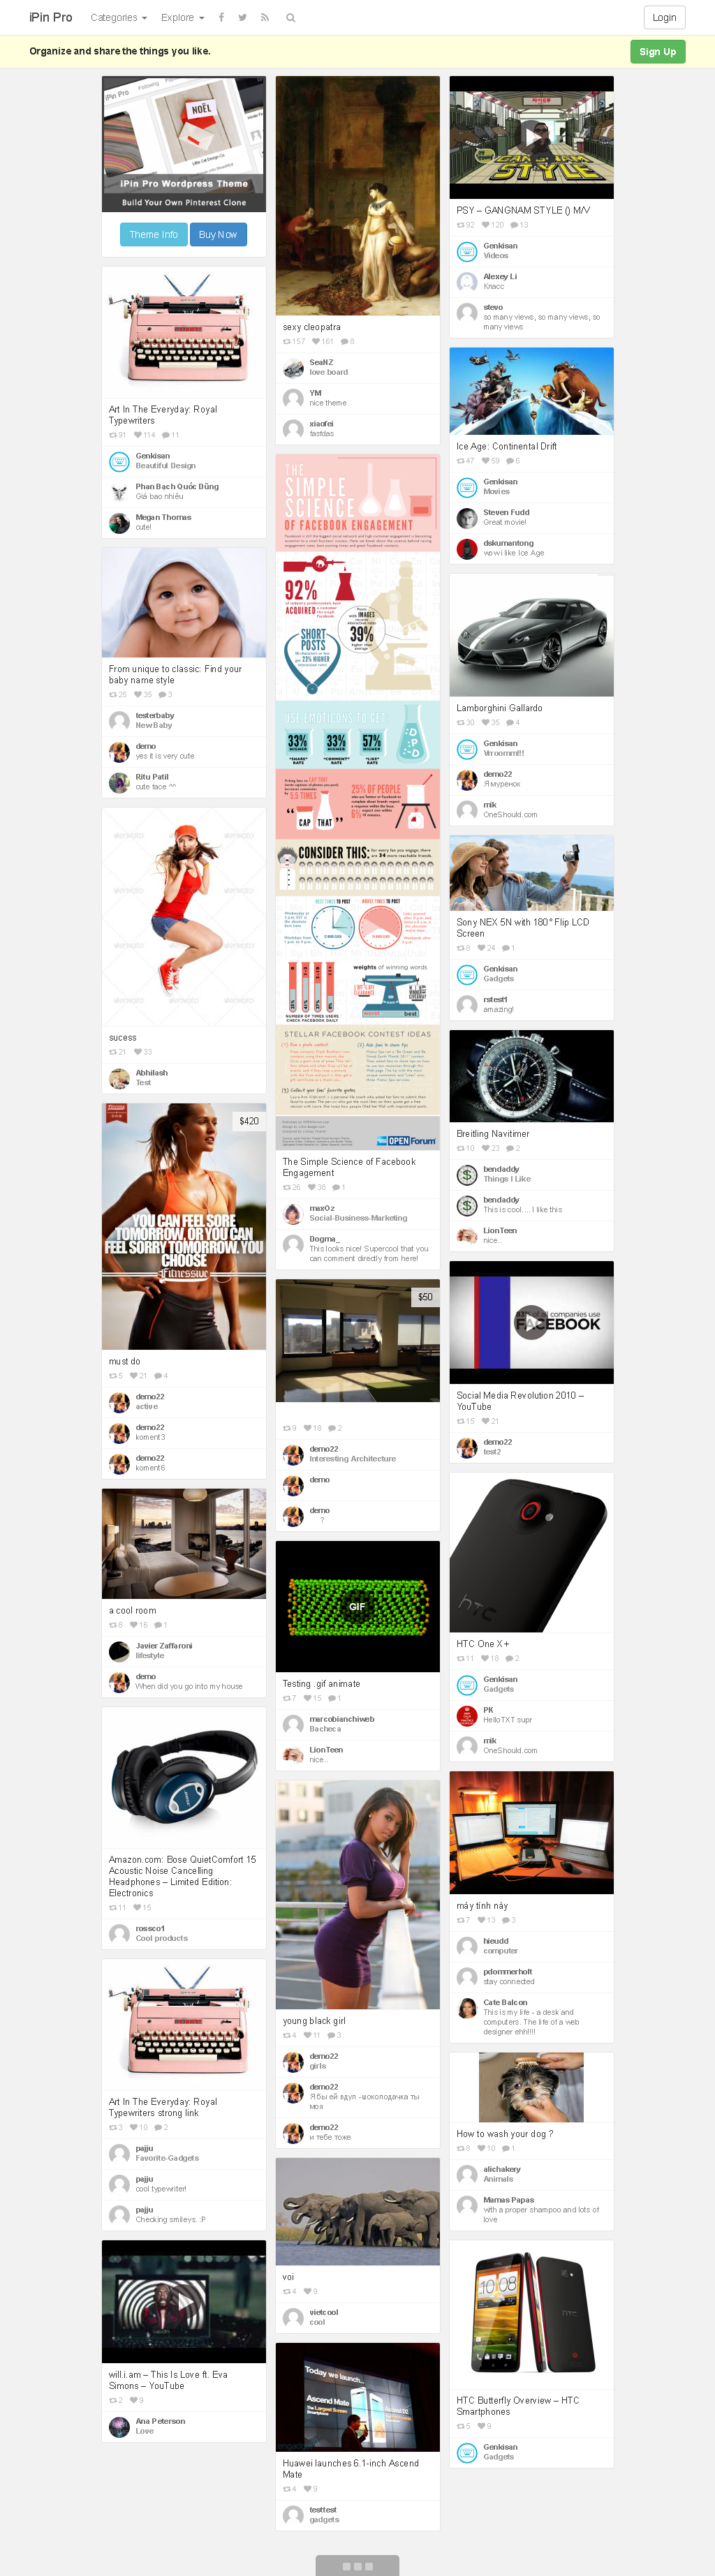 wordpress-pinterest-theme-ipin-pro